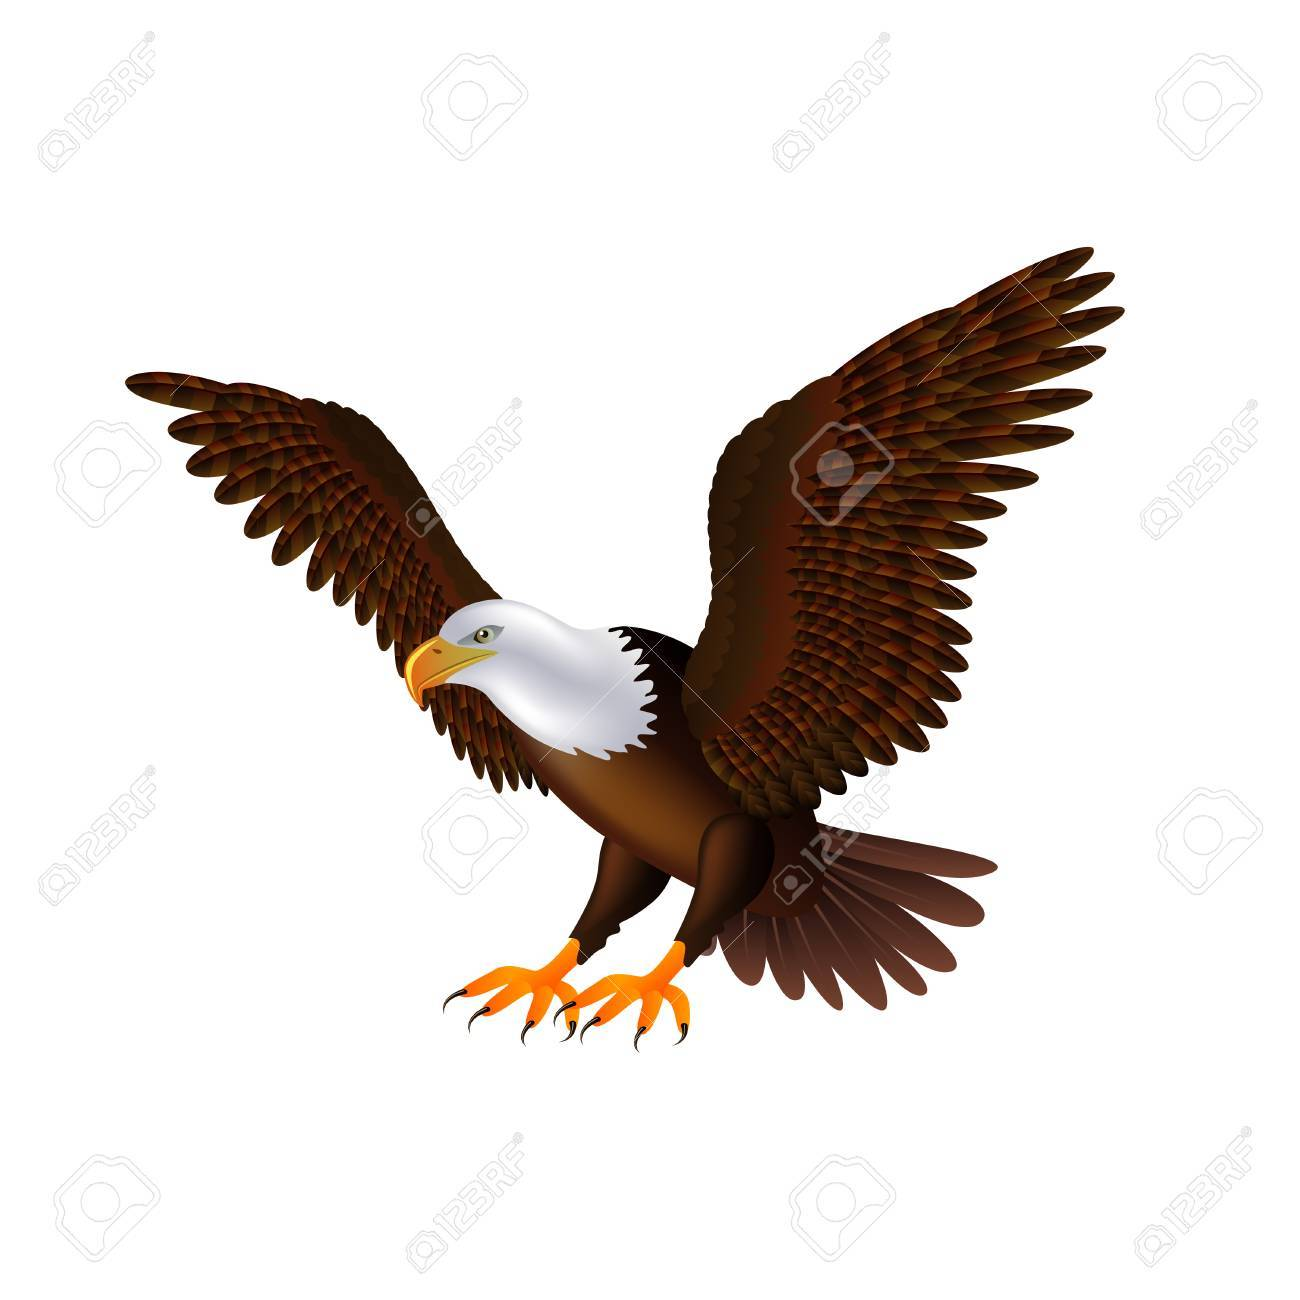 Flying eagle isolated on white photo realistic royalty free cliparts flying eagle isolated on white photo realistic stock vector 53126864 altavistaventures Image collections